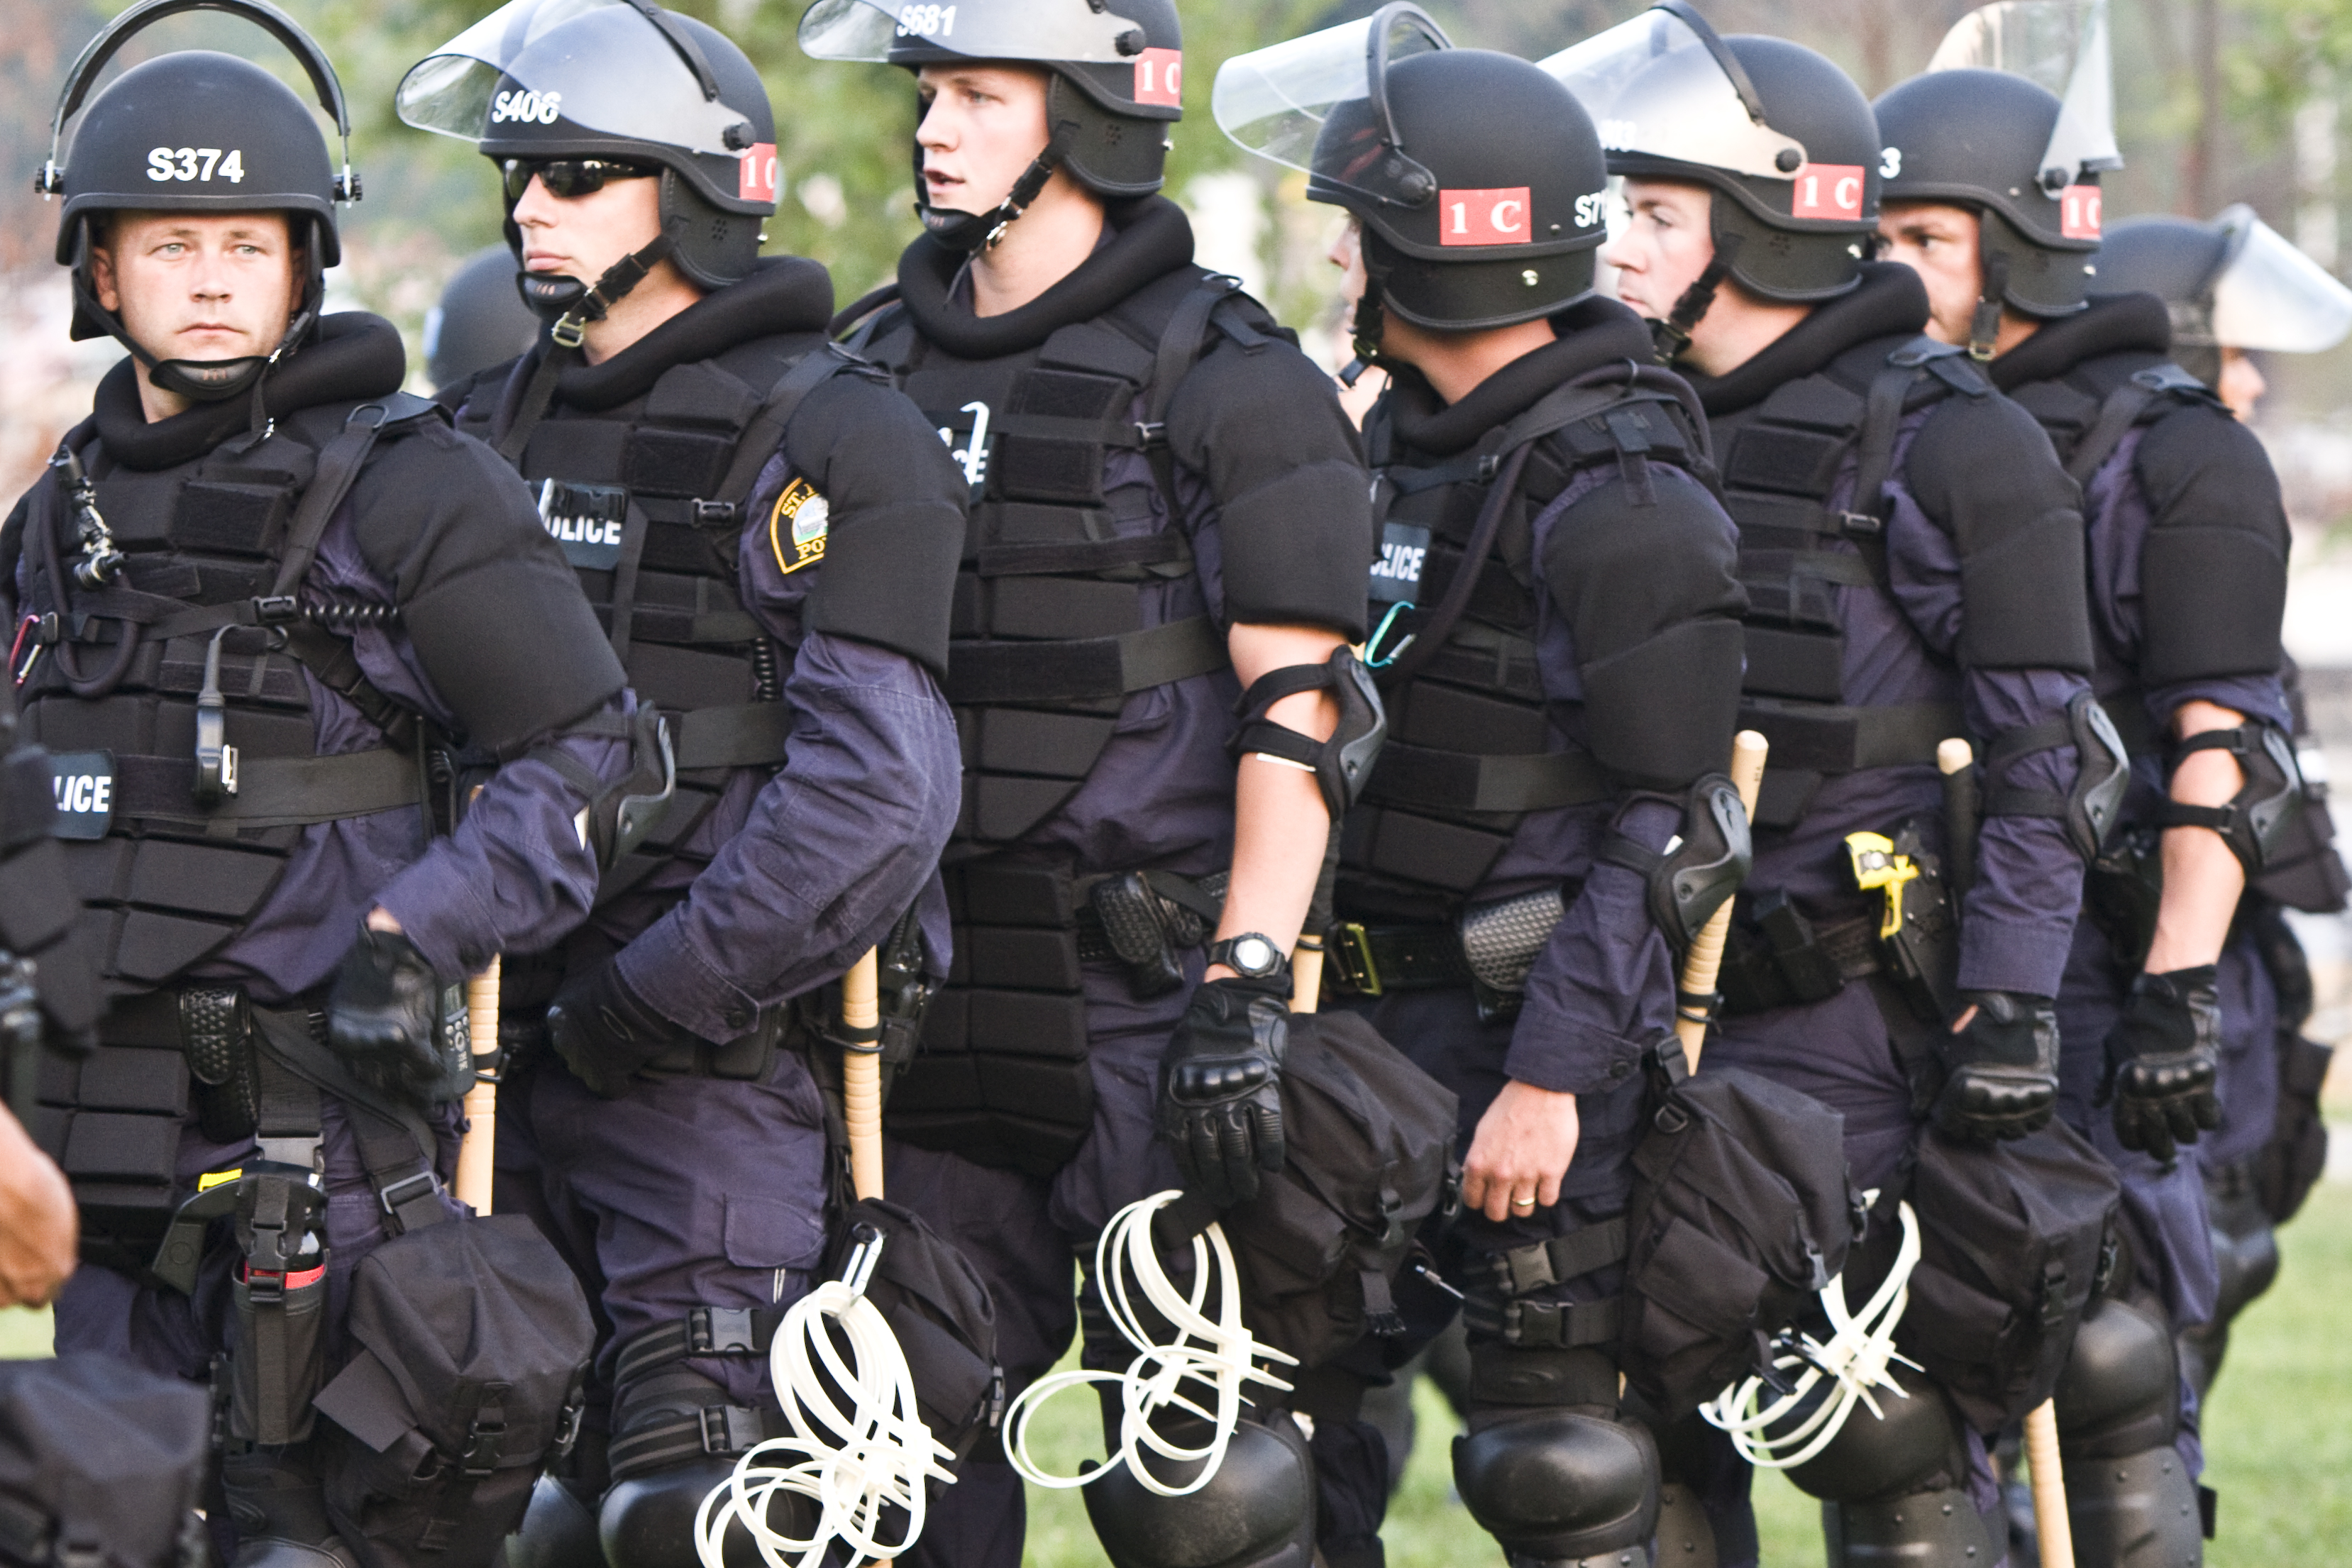 the militarization of north carolina 39 s police wunc. Black Bedroom Furniture Sets. Home Design Ideas